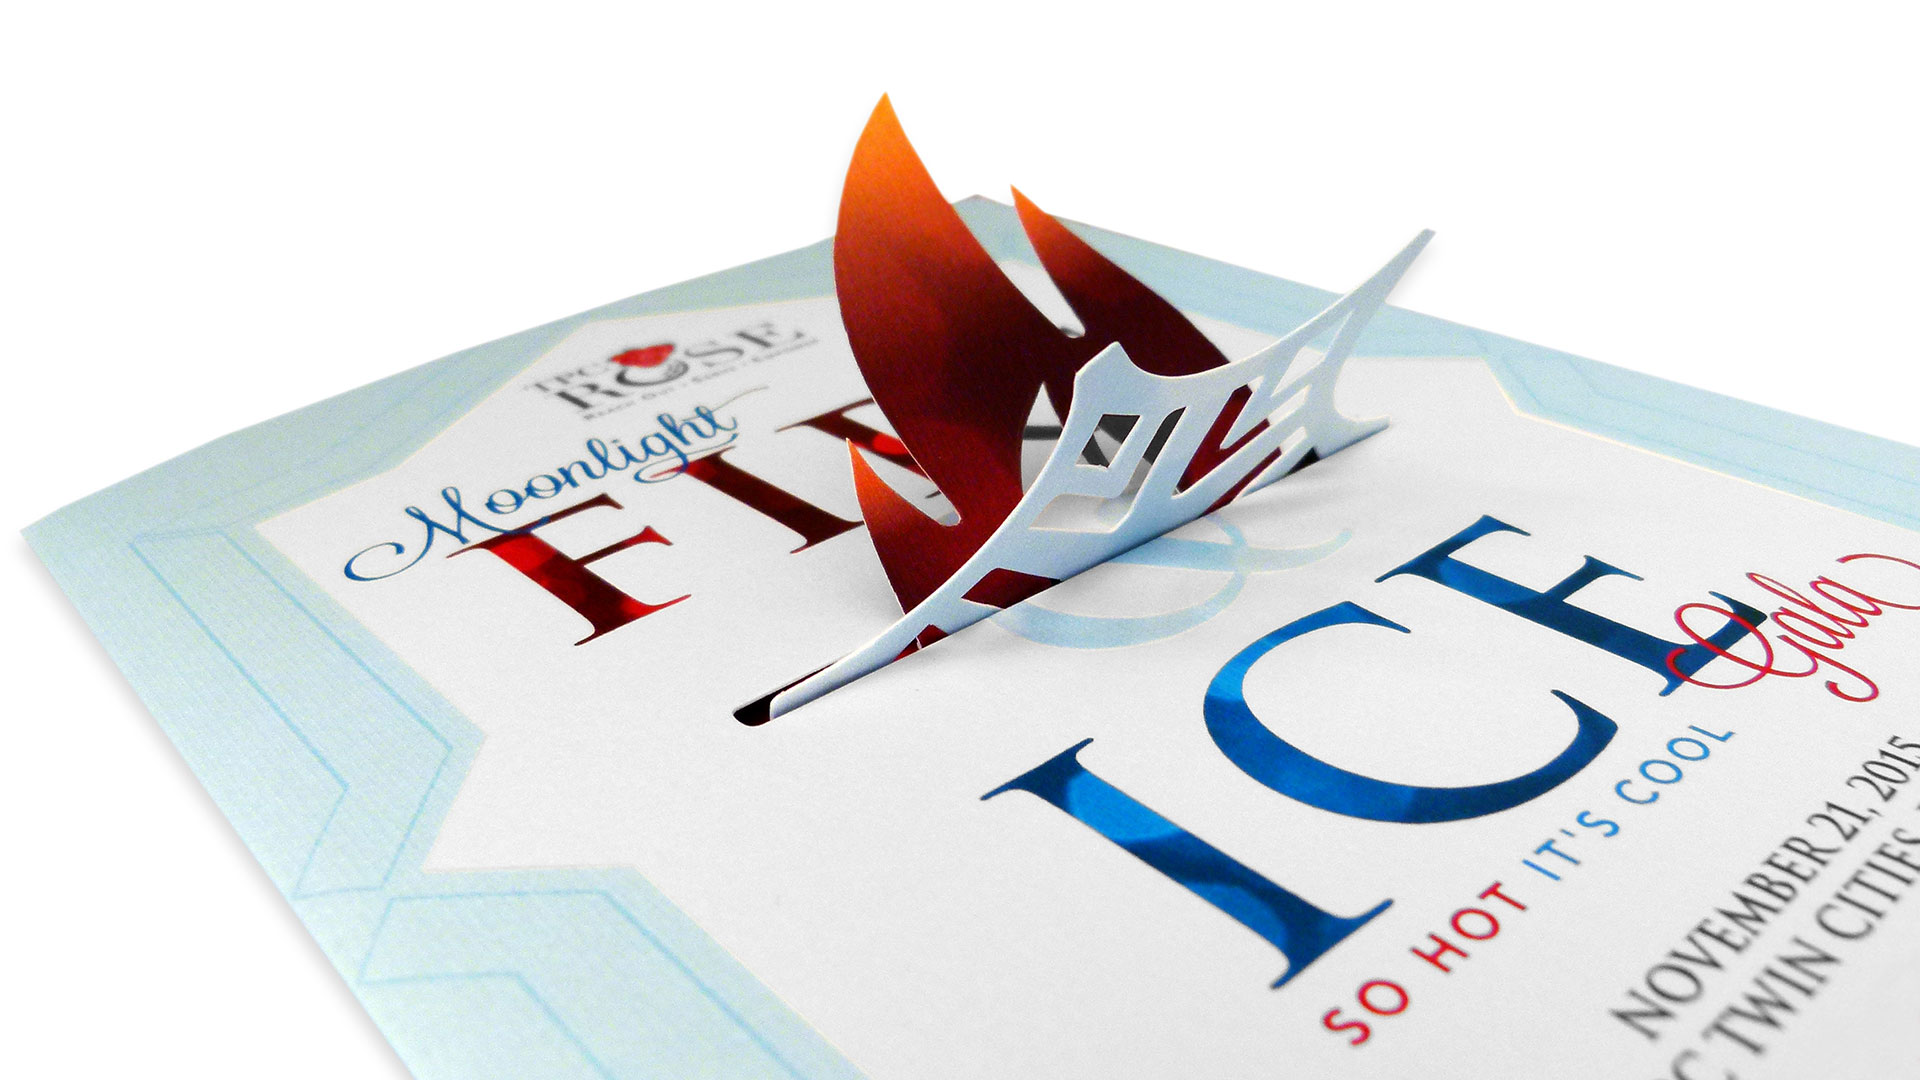 TPC ROSE Fire & Ice Moonlight Gala Invitations